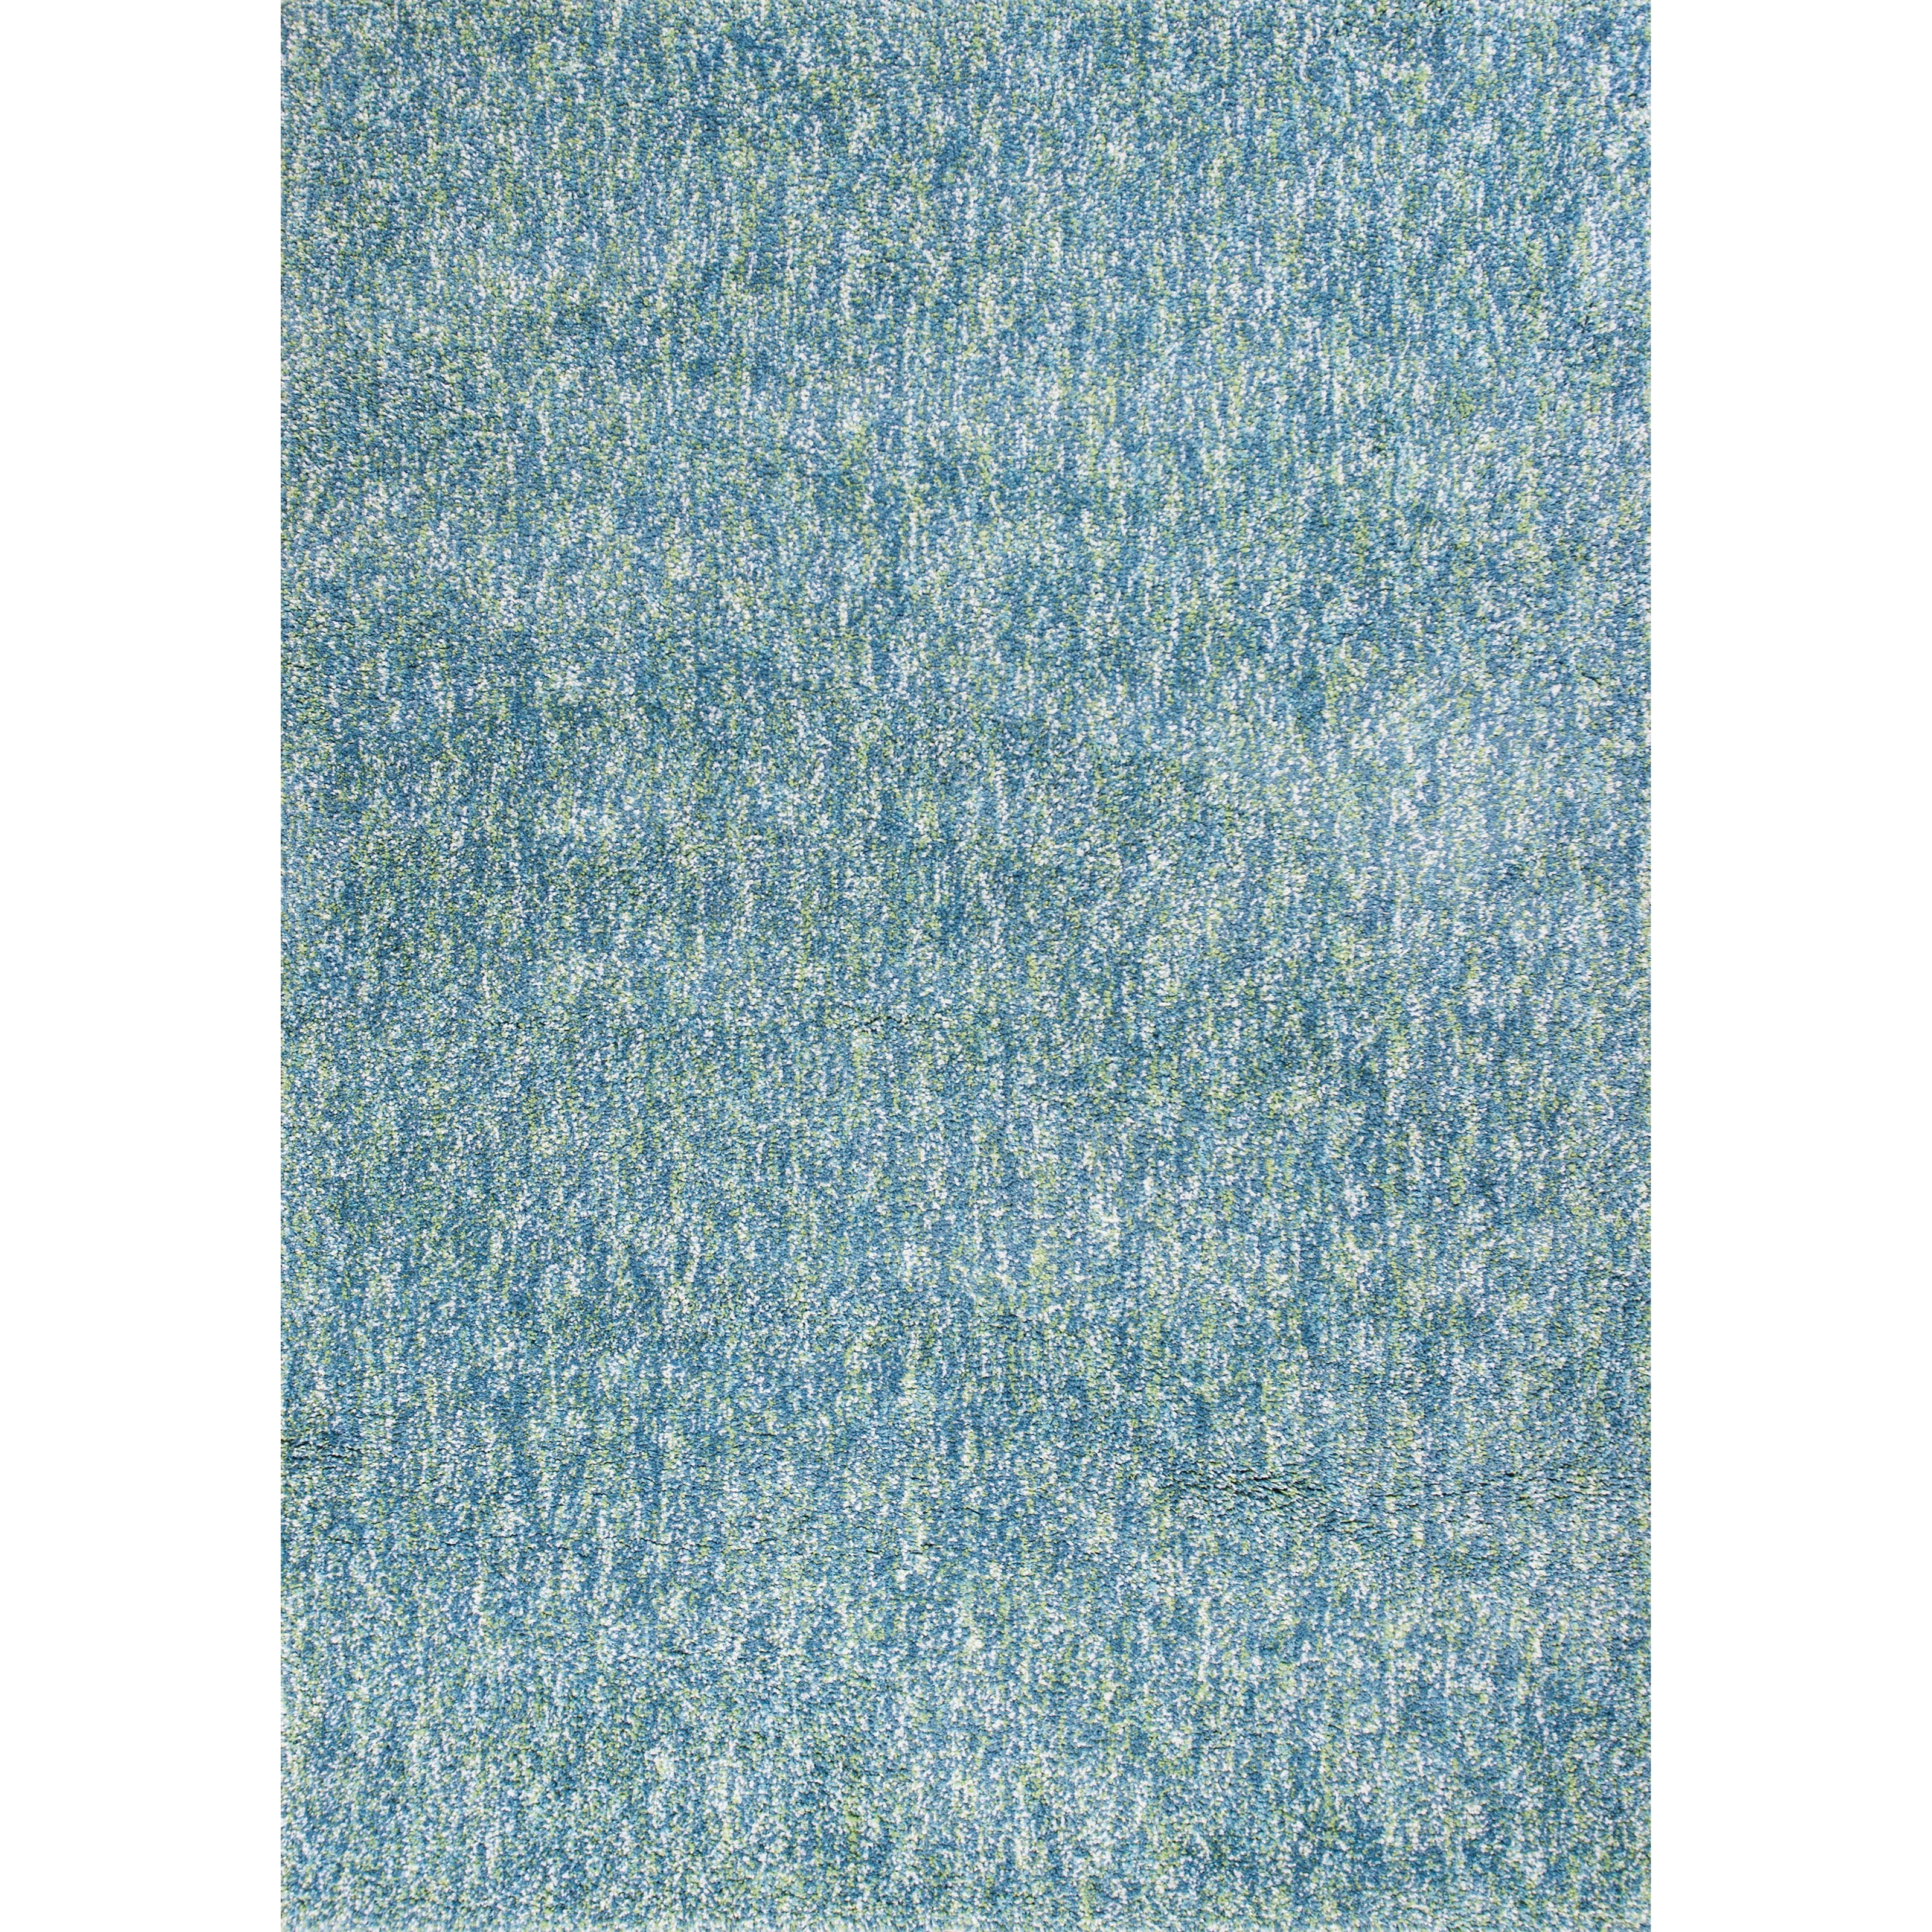 Bliss 13' X 9' Area Rug by Kas at Zak's Home